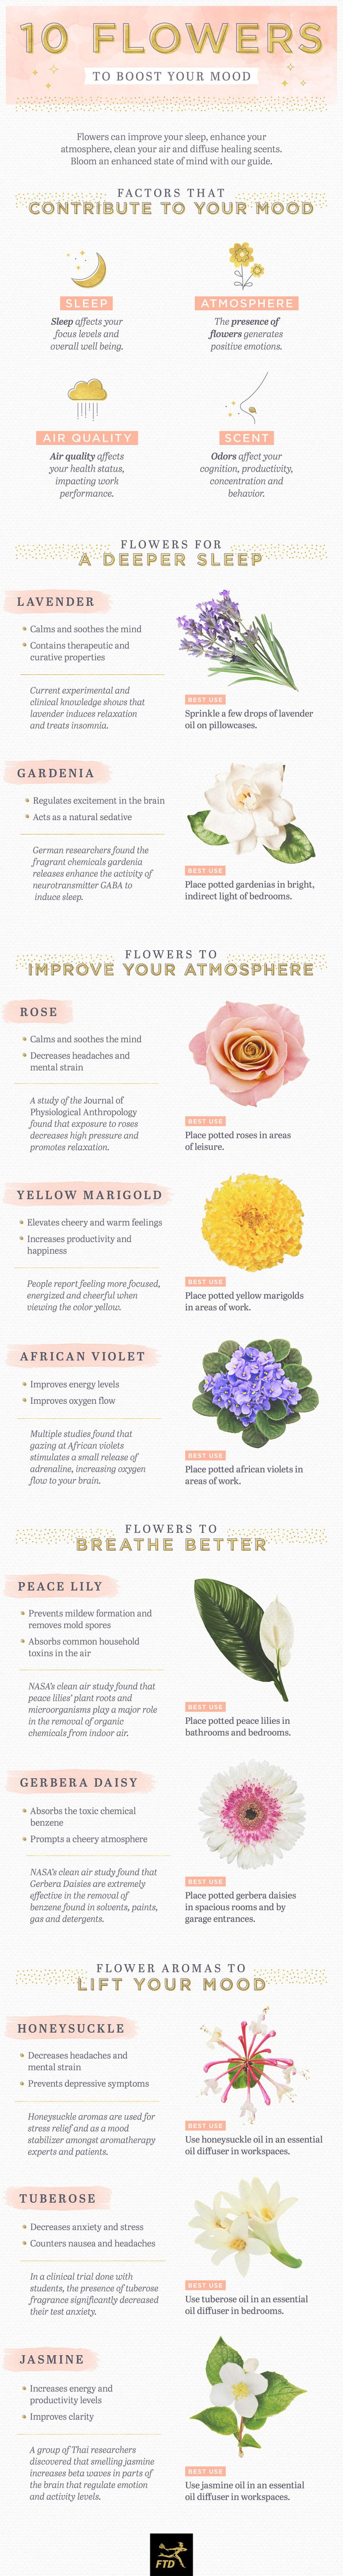 10 Flowers to Boost Your Mood